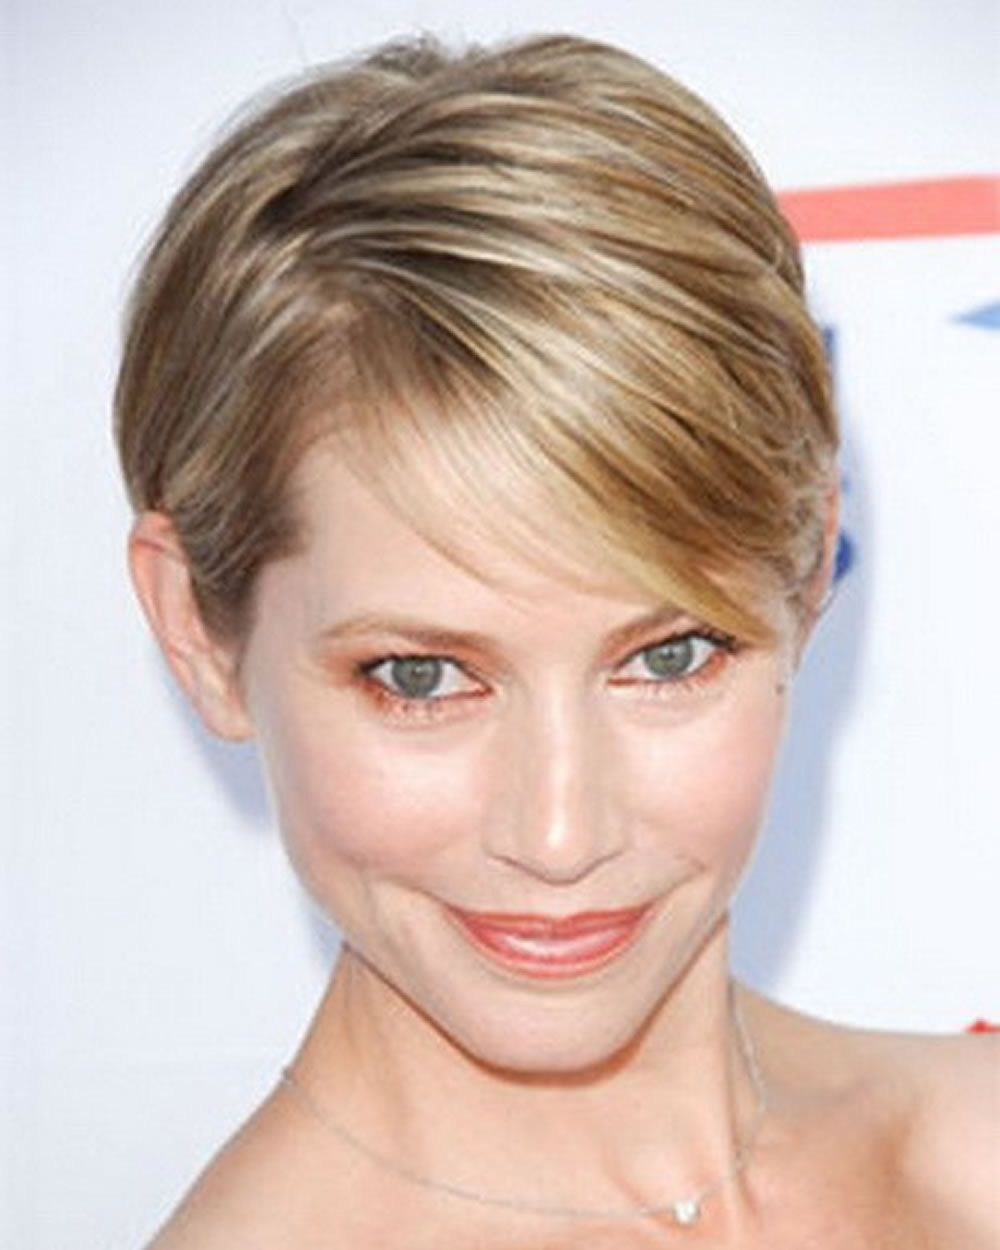 Thin Fine Hair Short Hairstyles 2020 Short Thin Hair Short Hairstyles Fine Thin Fine Hair